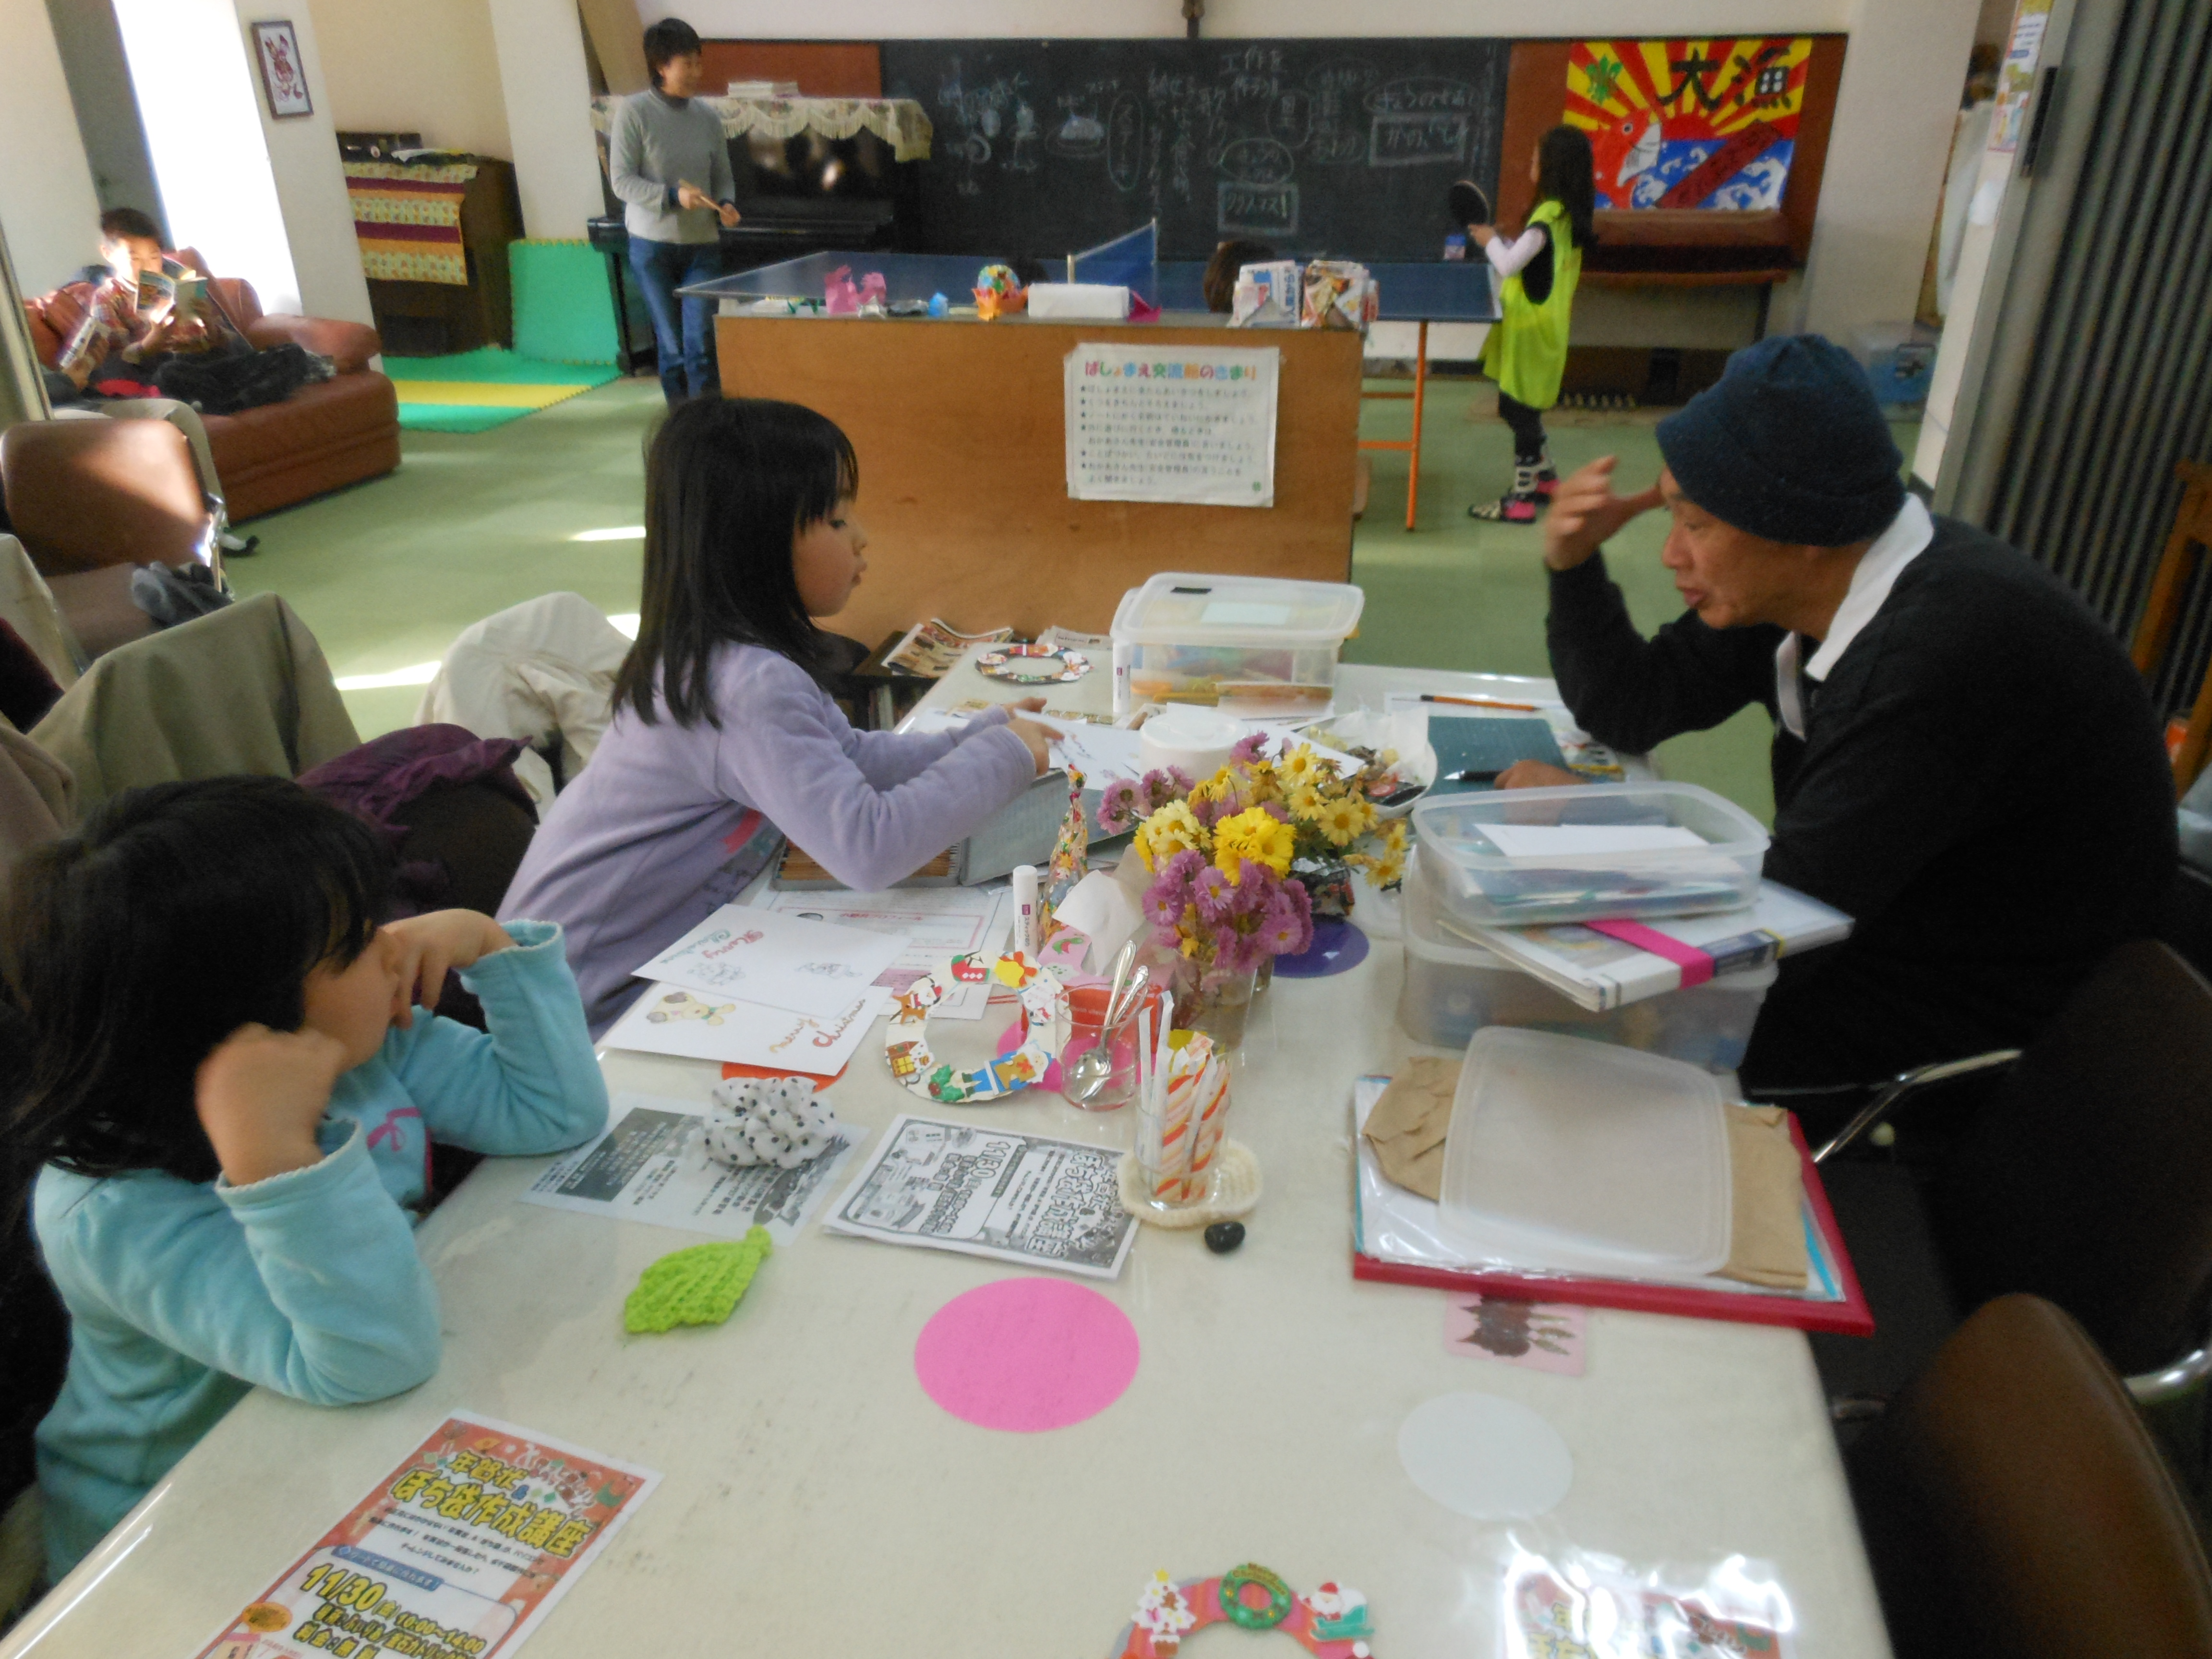 Community leader Katsumi Sawaguchi (right) talks with children at the Philia Cafe run by the Catholic charity Caritas Japan in Kamaishi, Iwate Prefecture.